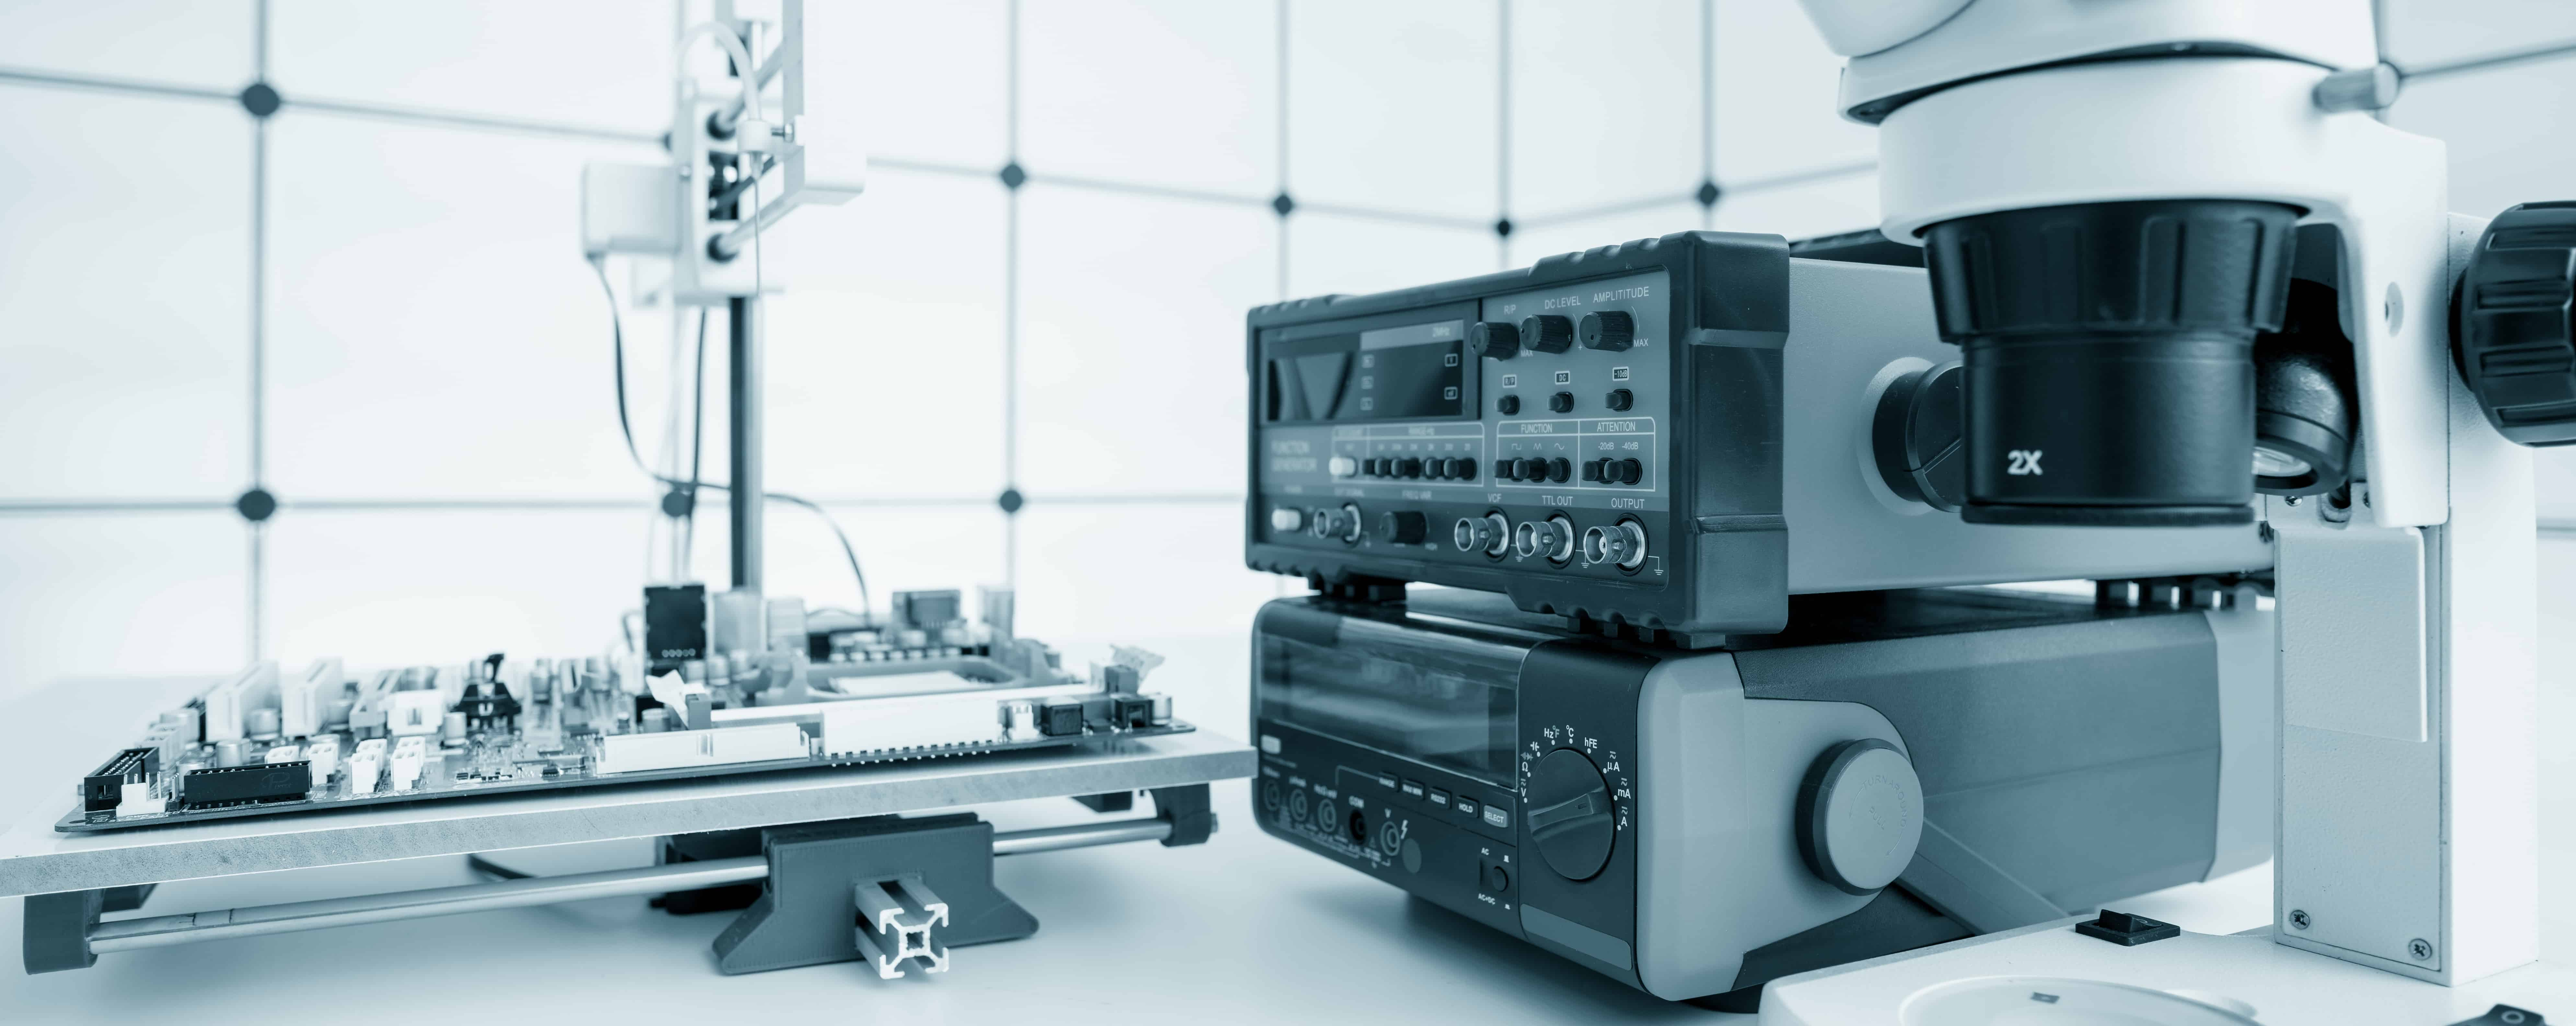 Test equipment in a semiconductor manufacturing and design lab